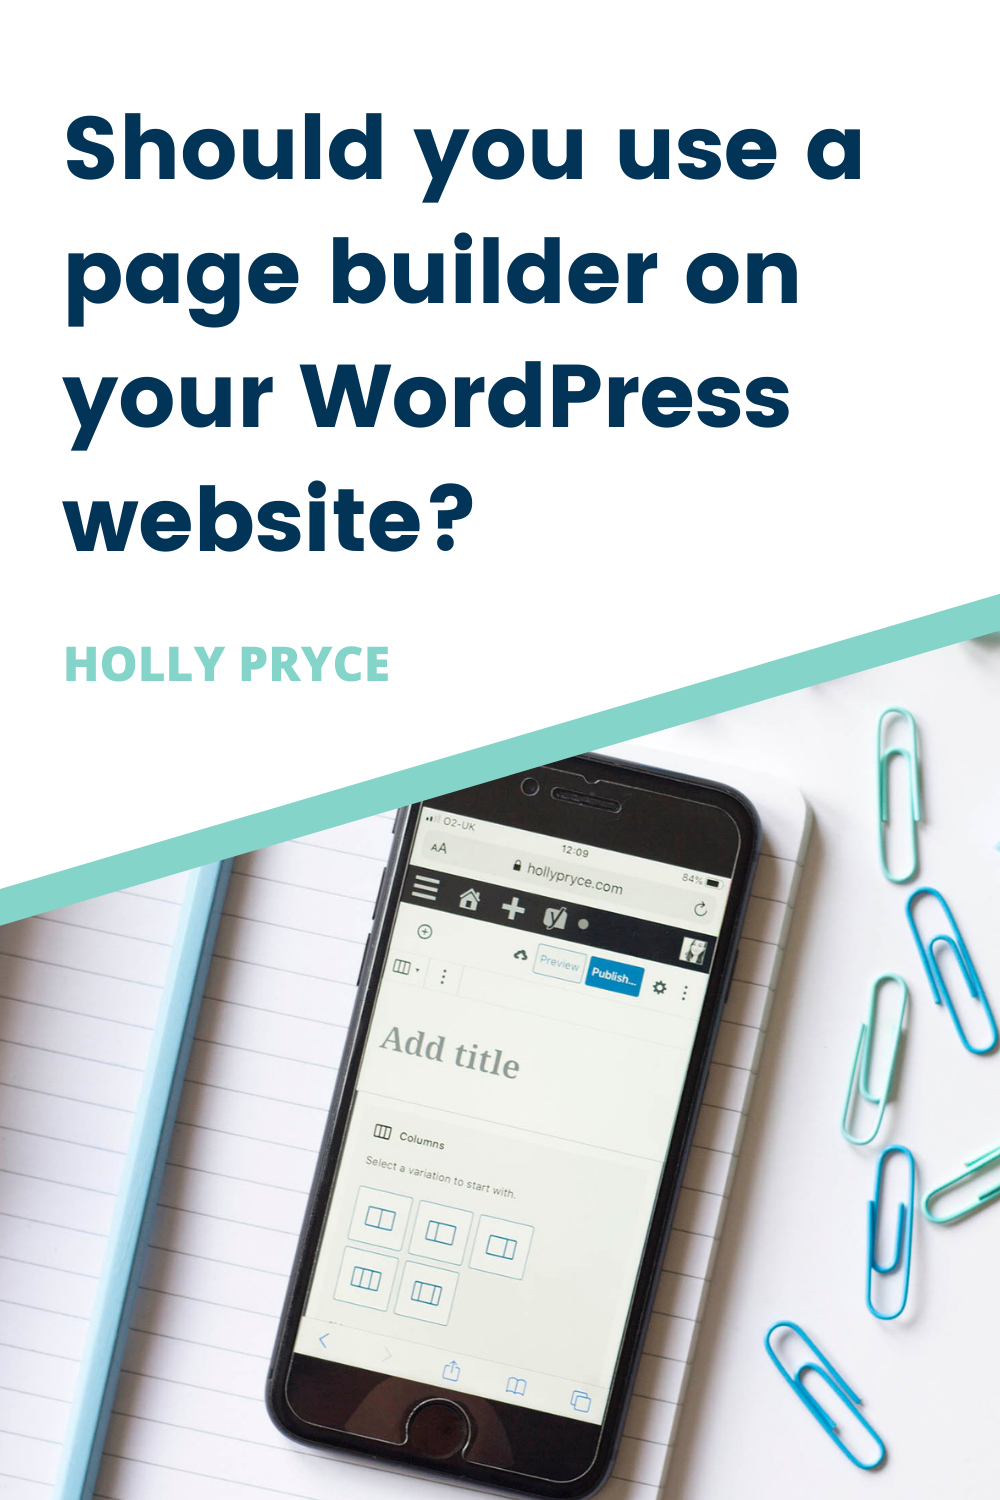 Should you use a page builder on your WordPress website? hollypryce.com